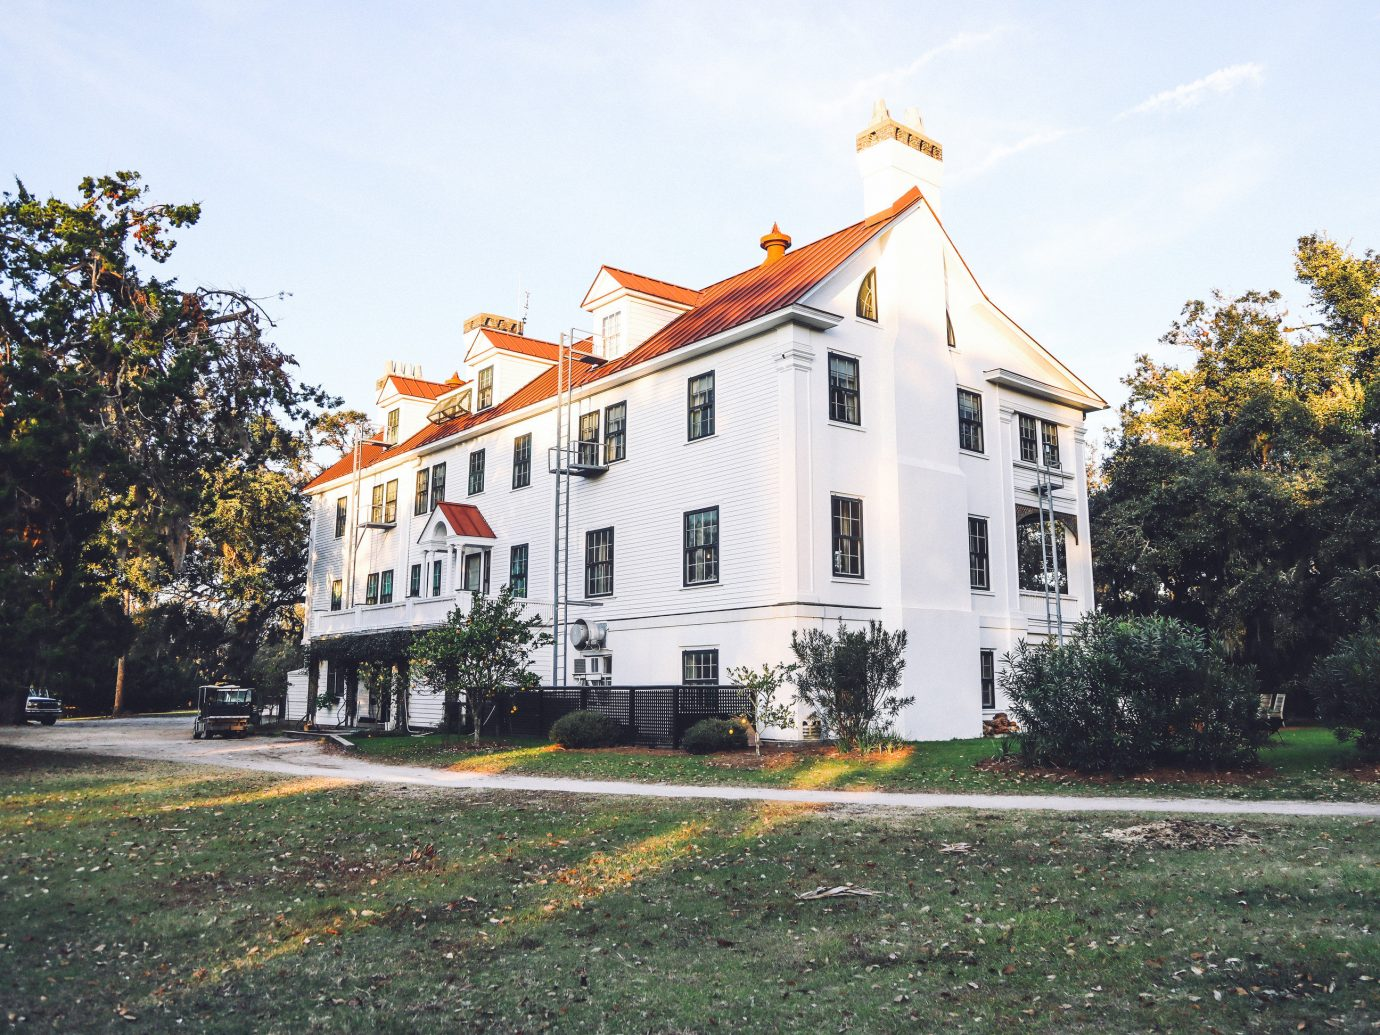 Greyfield Inn, Cumberland Island National Seashore